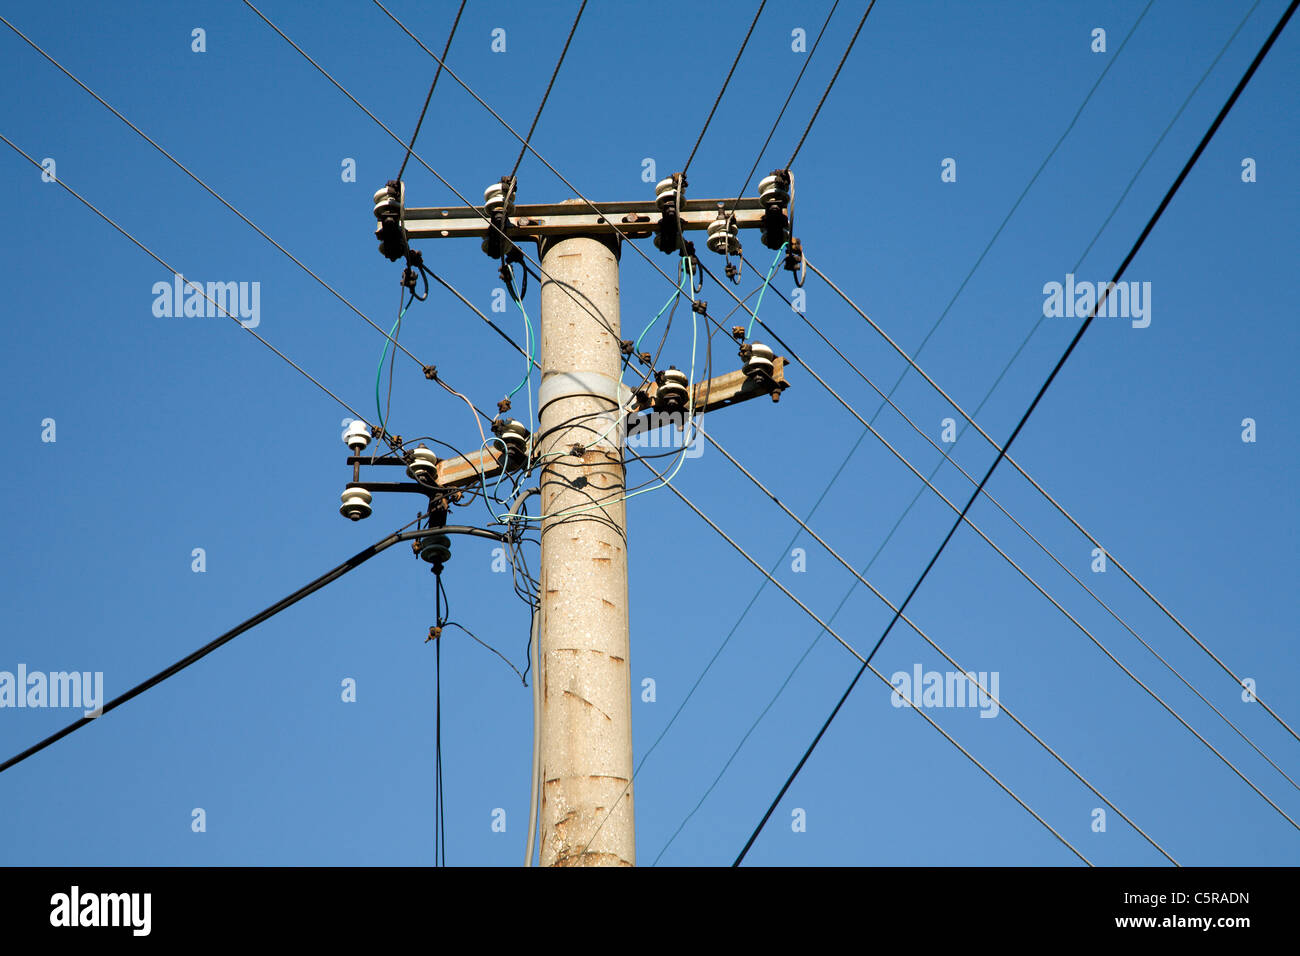 Stream Mast Stock Photos & Stream Mast Stock Images - Alamy